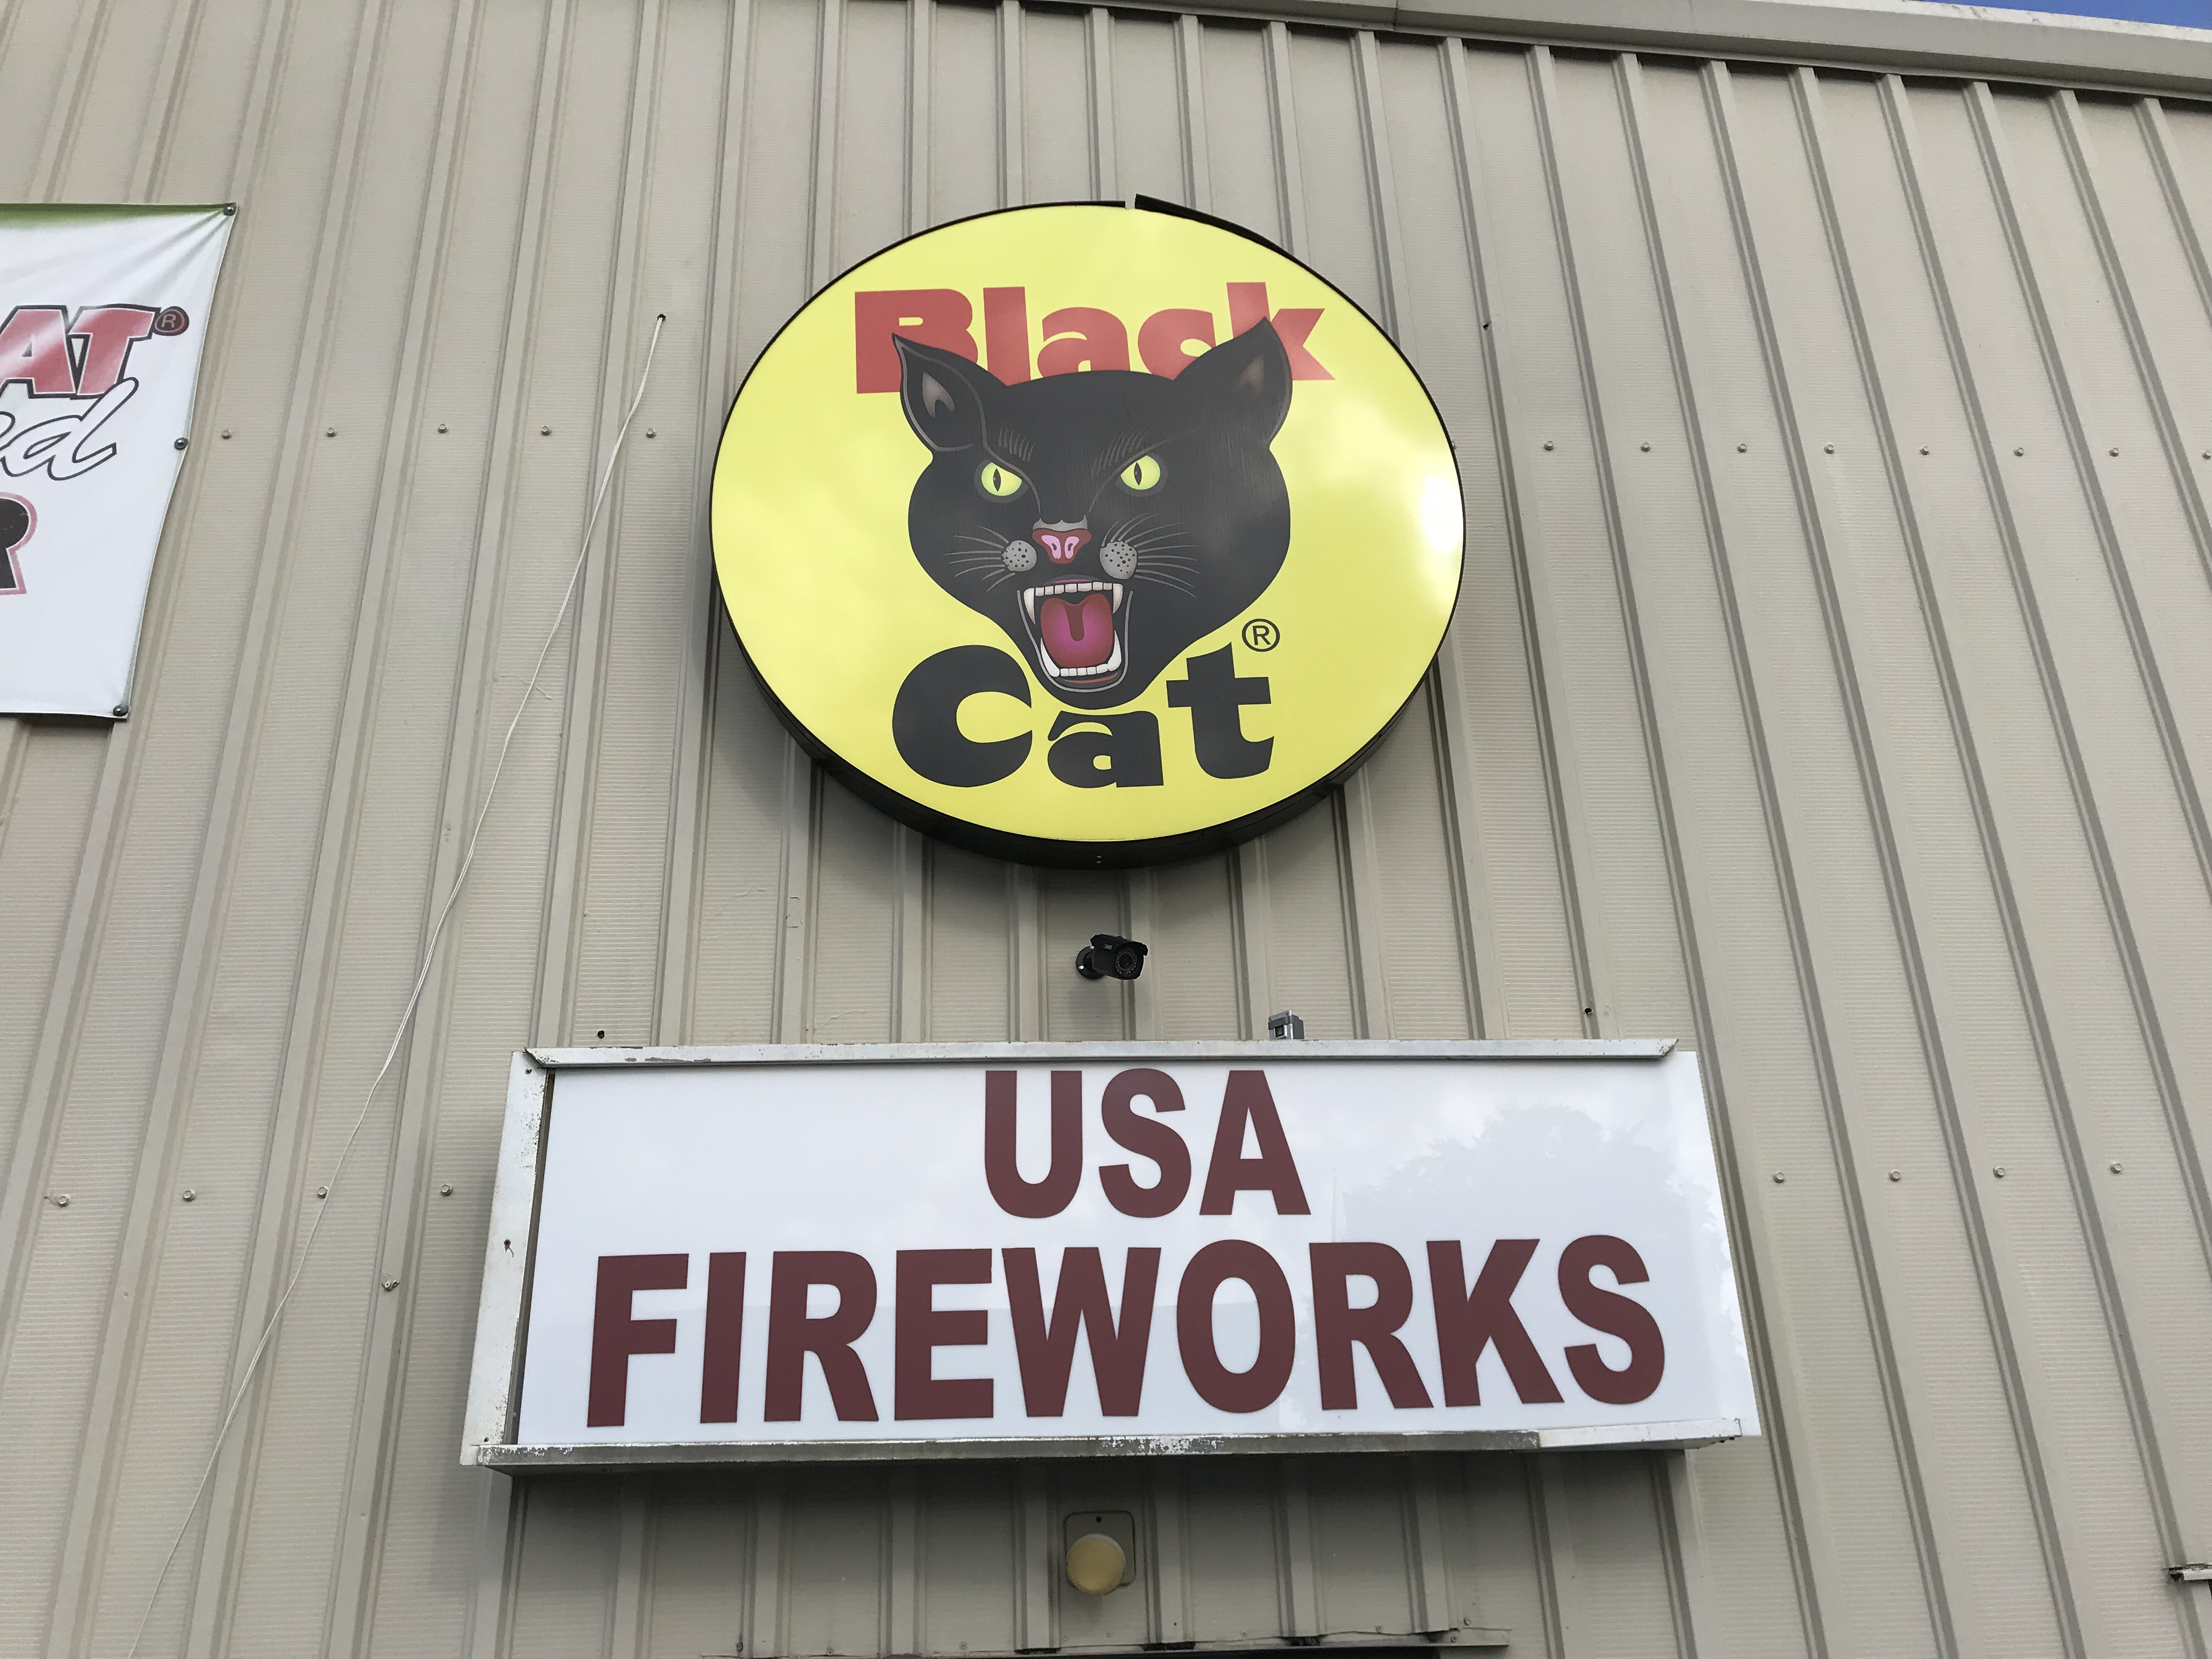 USA Fireworks Live Auction In Indianapolis, IN